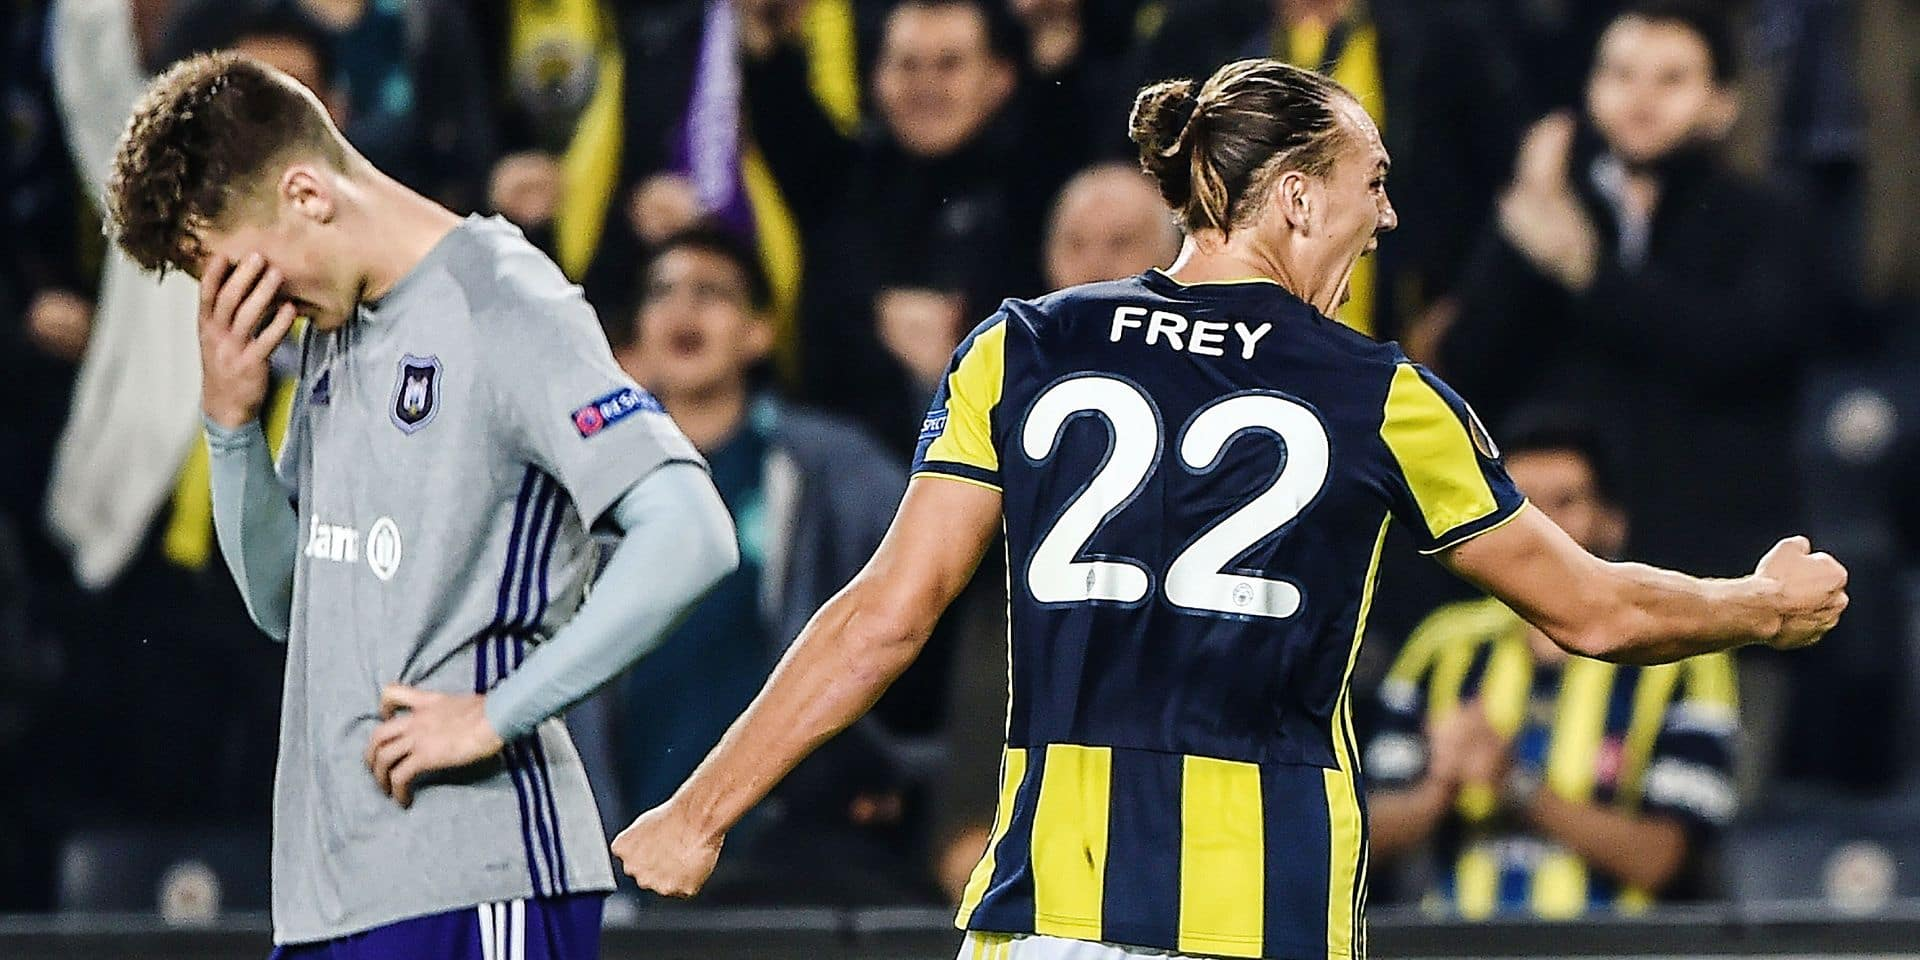 Fenerbahce's player Fenerbahce's Swiss forward Michael Frey celebrates as an Anderlecht's Belgian defender Alexis Saelemaekers reacts during their UEFA Europa League Group D match, Fenerbahce versus Anderlecht, at Ulker Stadium in Istanbul on November 8, 2018. (Photo by BULENT KILIC / AFP)